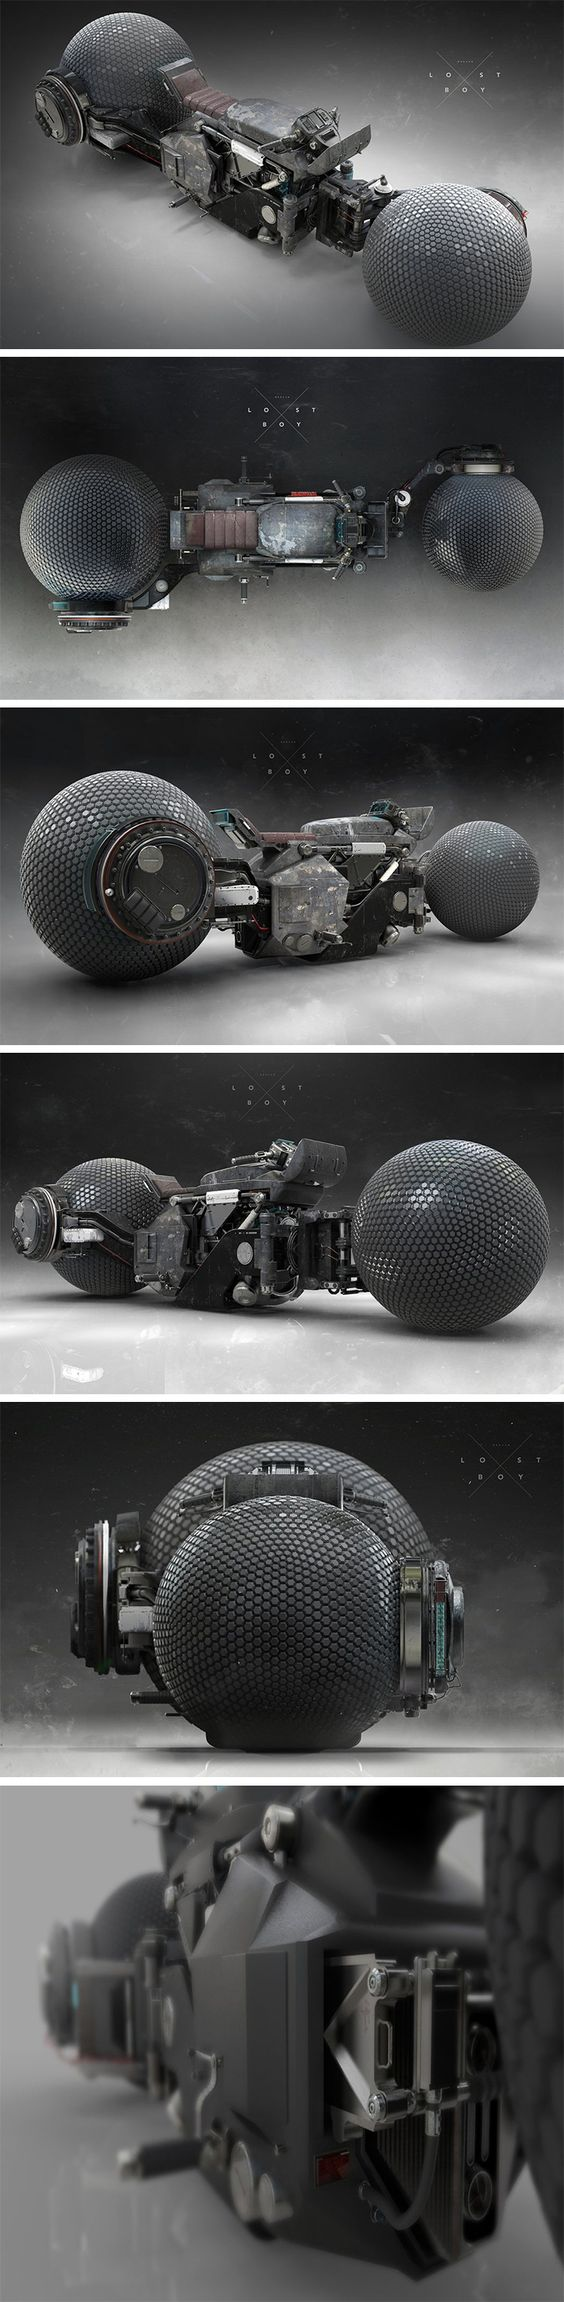 As featured in the sci-fi film LOSTBOY, this mean-looking motorcycle concept by designer Patrick A Razo is part steampunk and part ultra-futurism! At the center of its S-shaped frame, a sort of ragbag jumble of mechanical parts, seemingly chopped from other machines. On either end, spherical wheels with gecko-grip for precision maneuvering in any direction. This low-slung, no-frills bad boy isn't for the faint of heart!